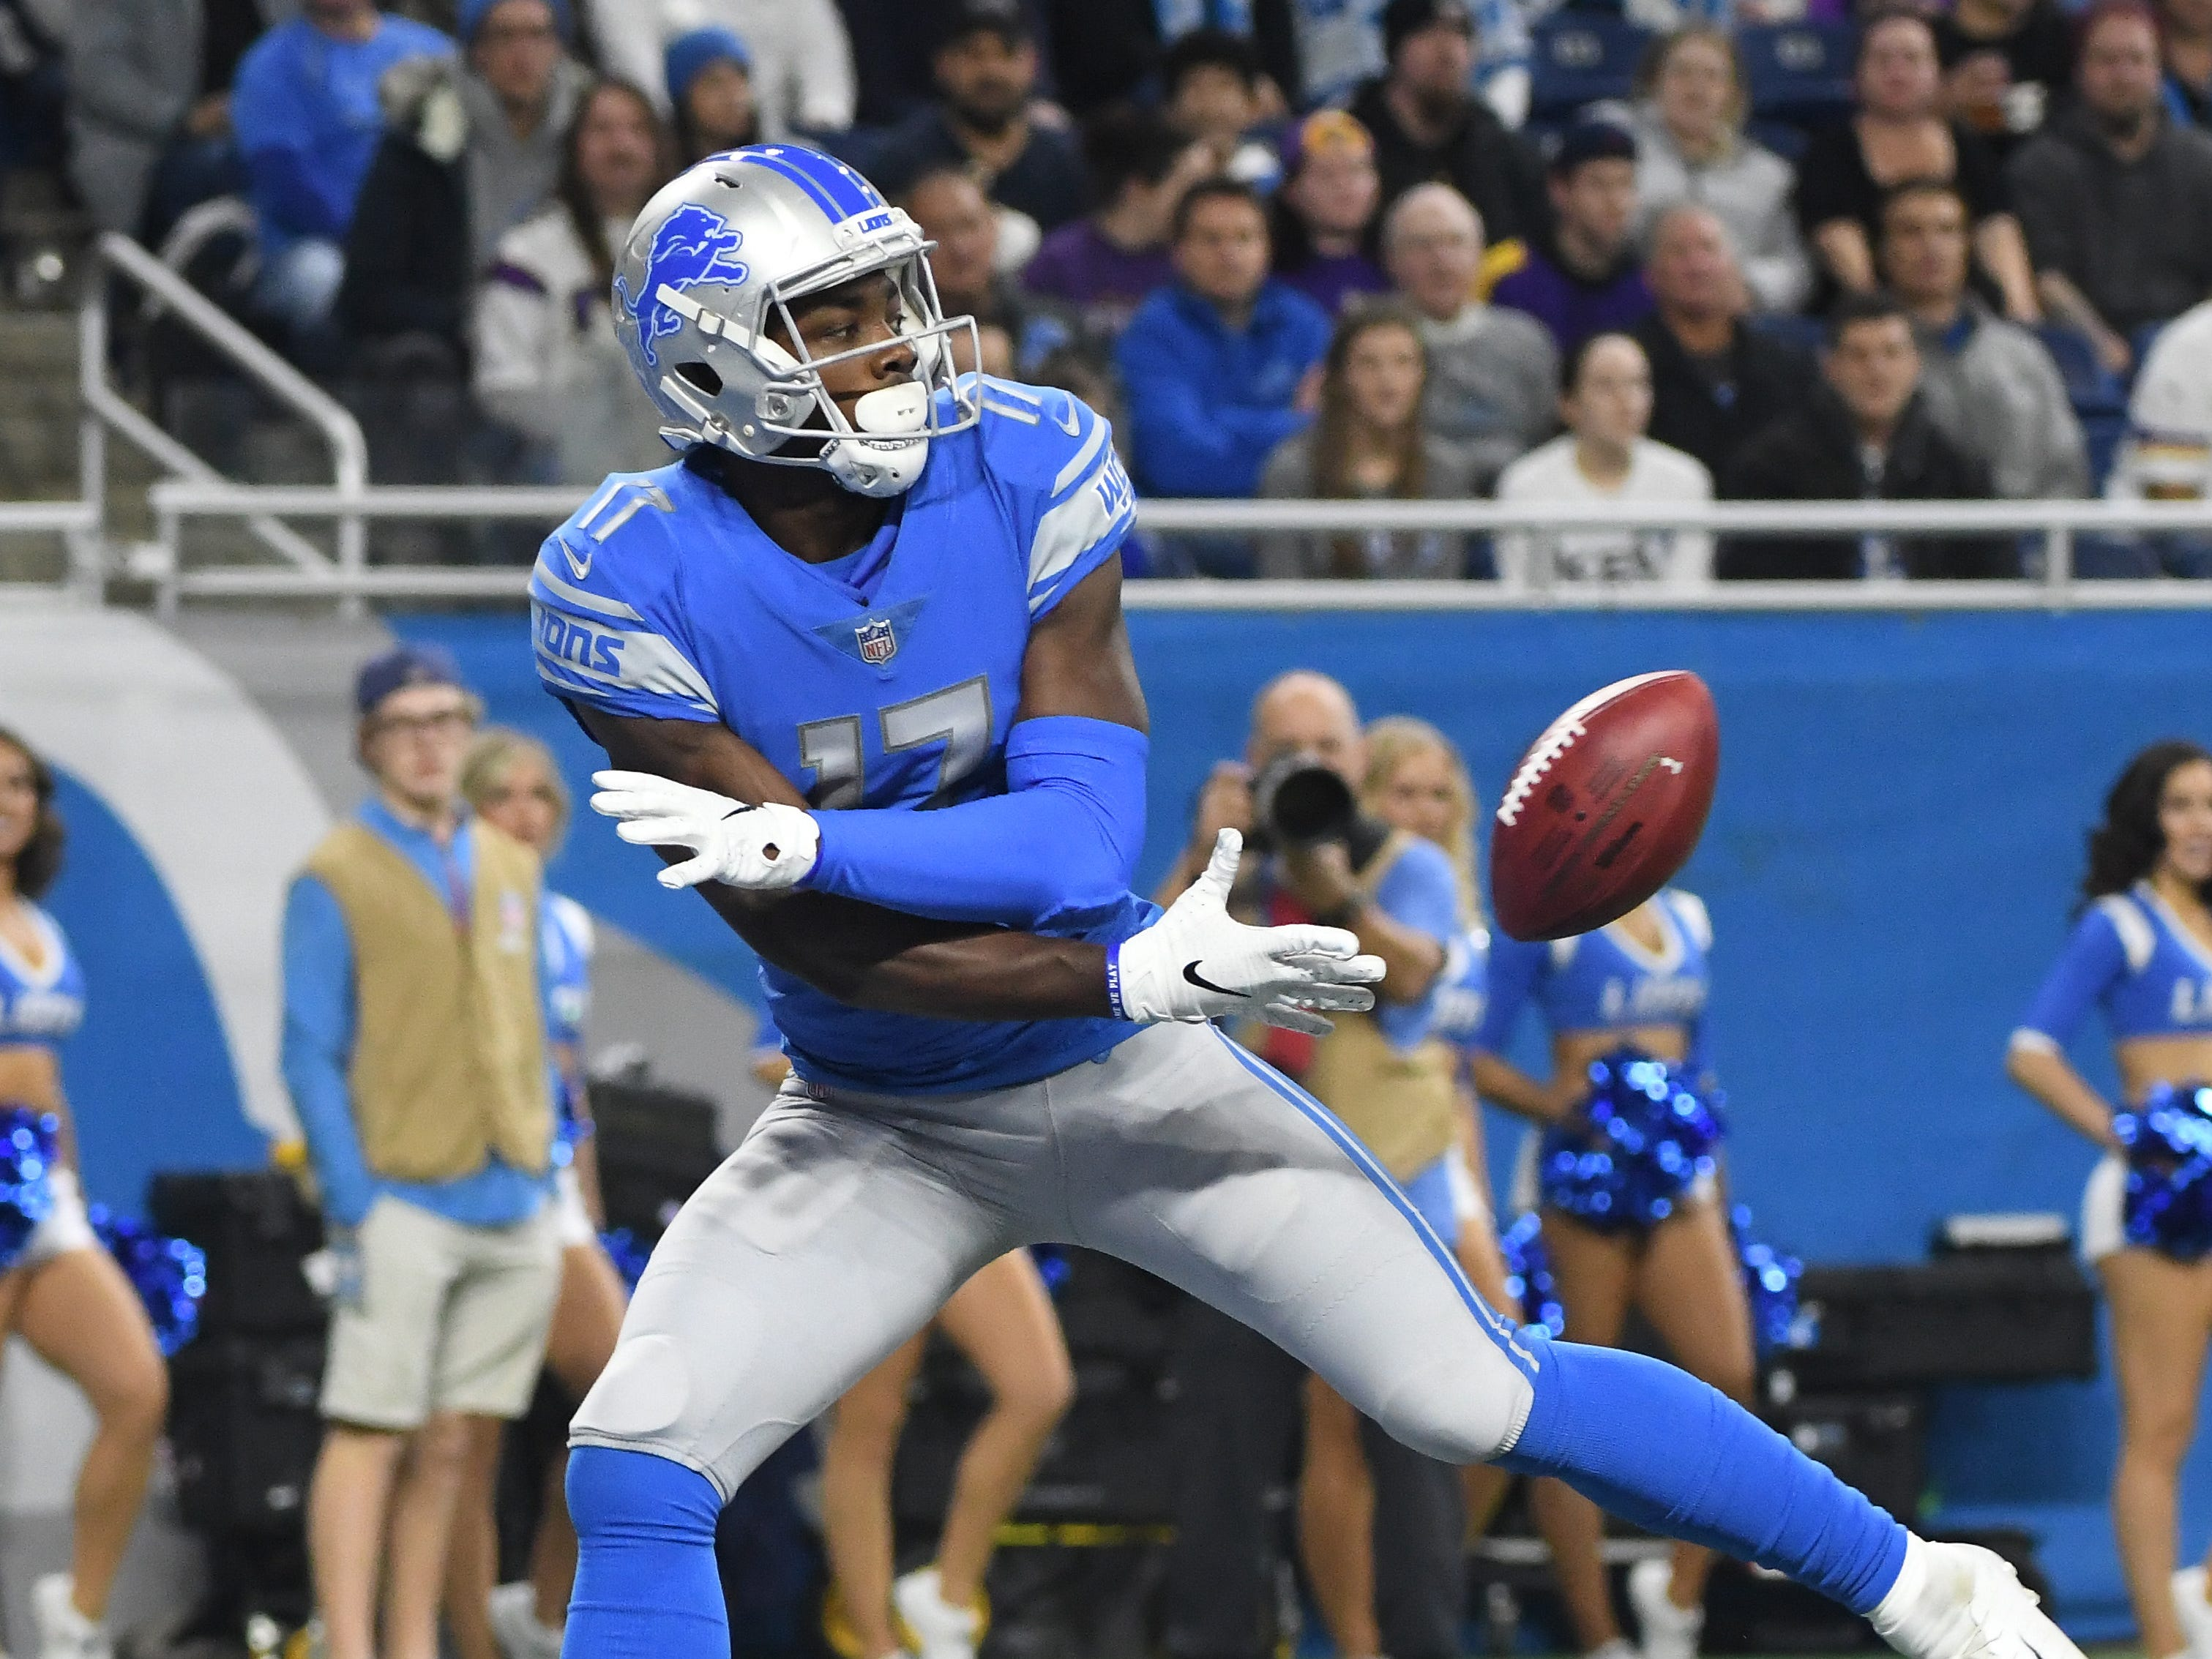 WR Andy Jones: Jones was never going to wow anyone with his receiving skills. In fact, he dropped two of his 22 targets. But he compensated for his lack of production as a pass catcher with impressive blocking ability and special-teams play. No Lions receiver, including Golladay, showed a knack from digging out a safety on a run play quite like Jones. And on a per-game basis, he was one of Detroit's top tacklers on special teams.  Grade: C-